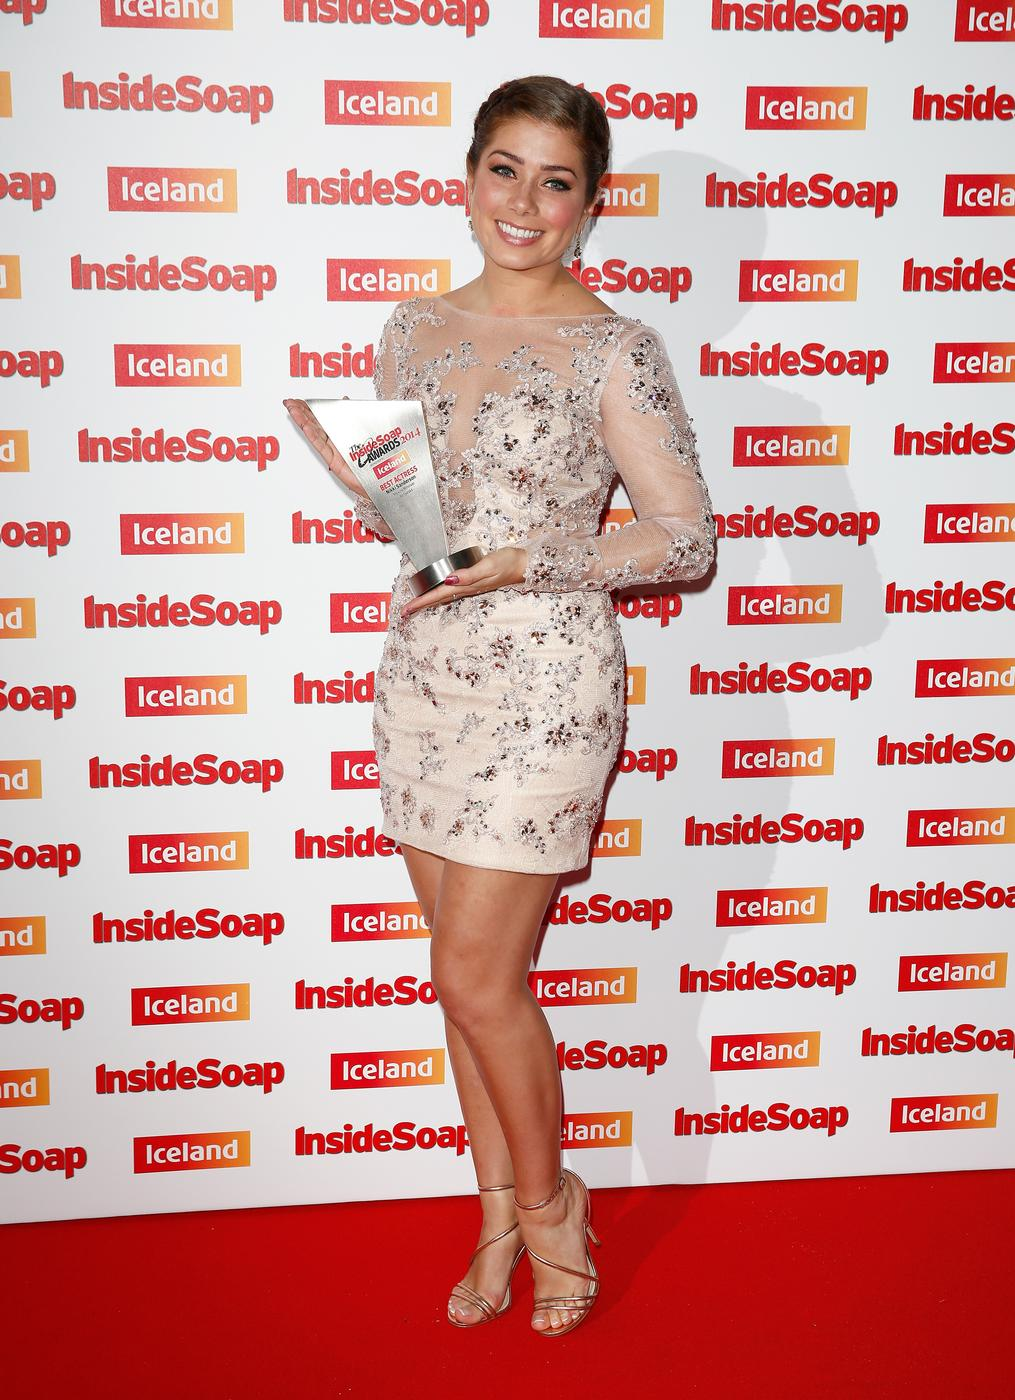 EXCLUSIVE: Hollyoaks' Nikki Sanderson teases 'there's so much more drama to come for Maxine'